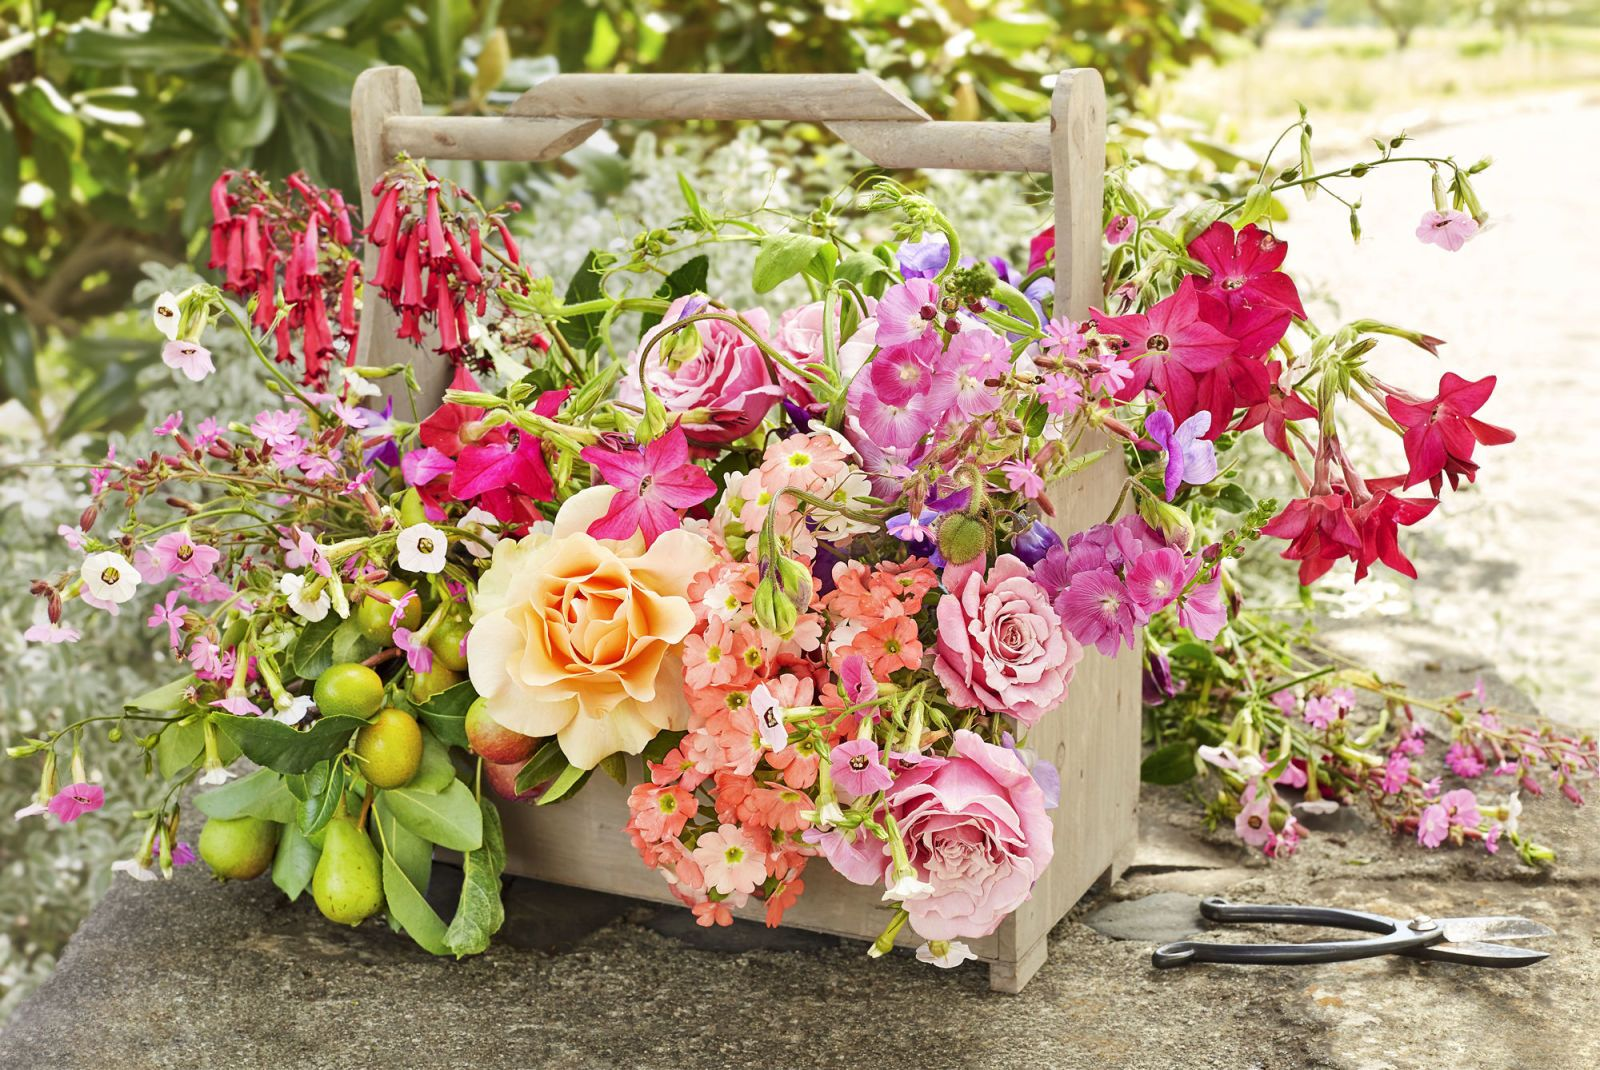 Superieur Wooden Toolbox Floral Arrangement